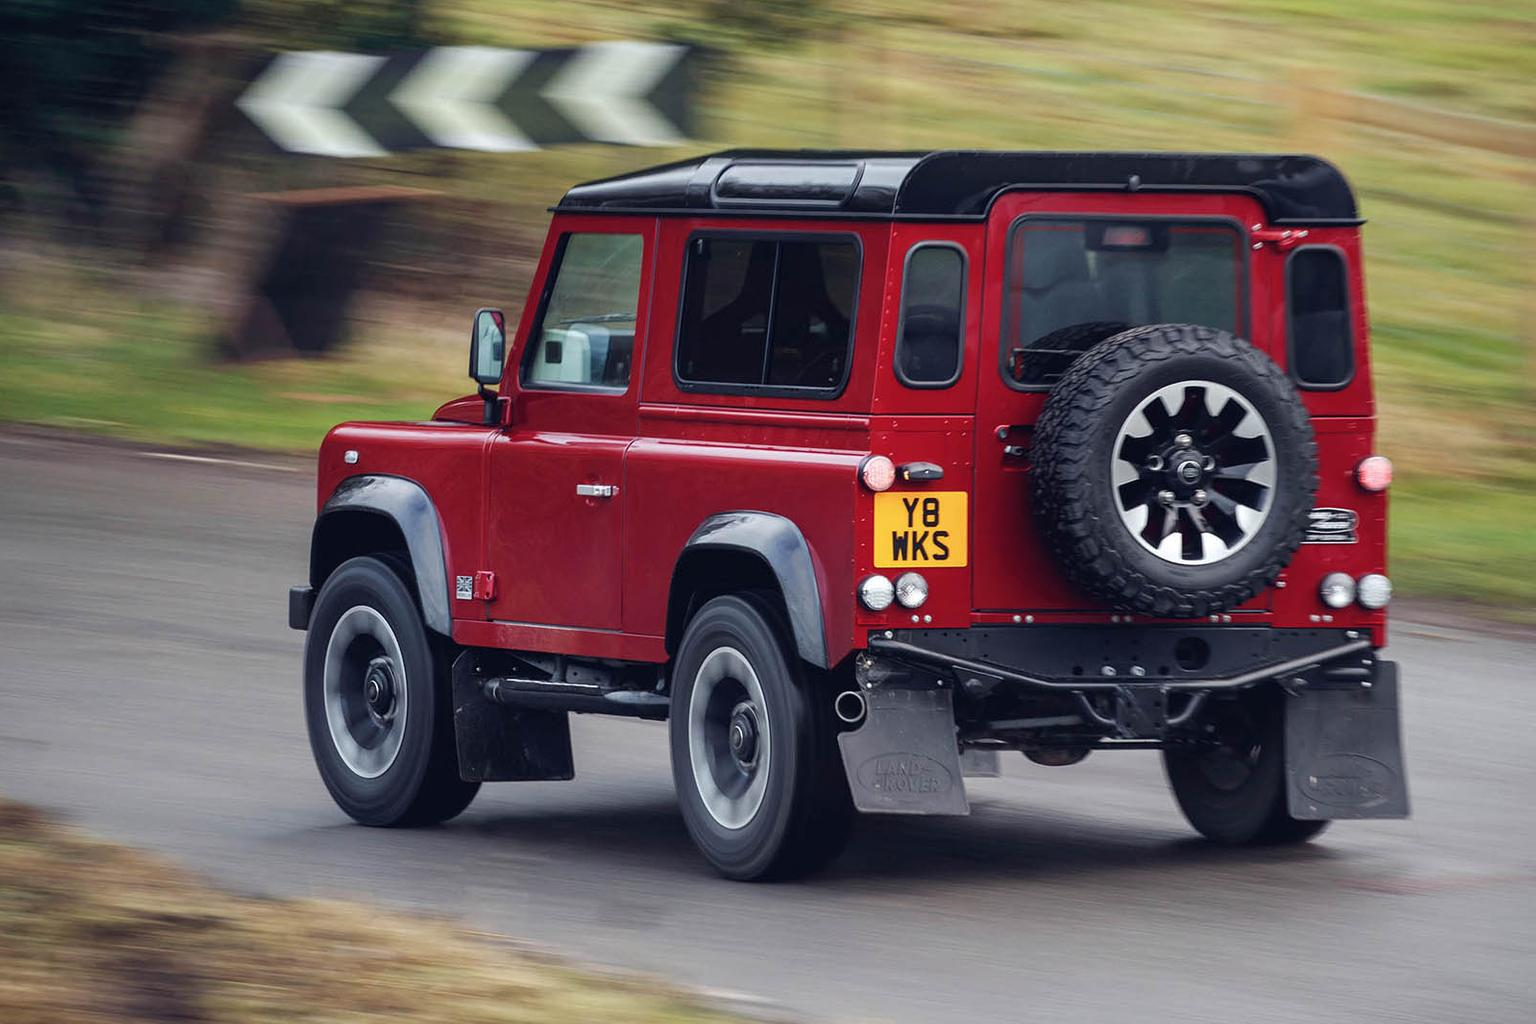 V8-engined Land Rover Defender to sell for £150,000